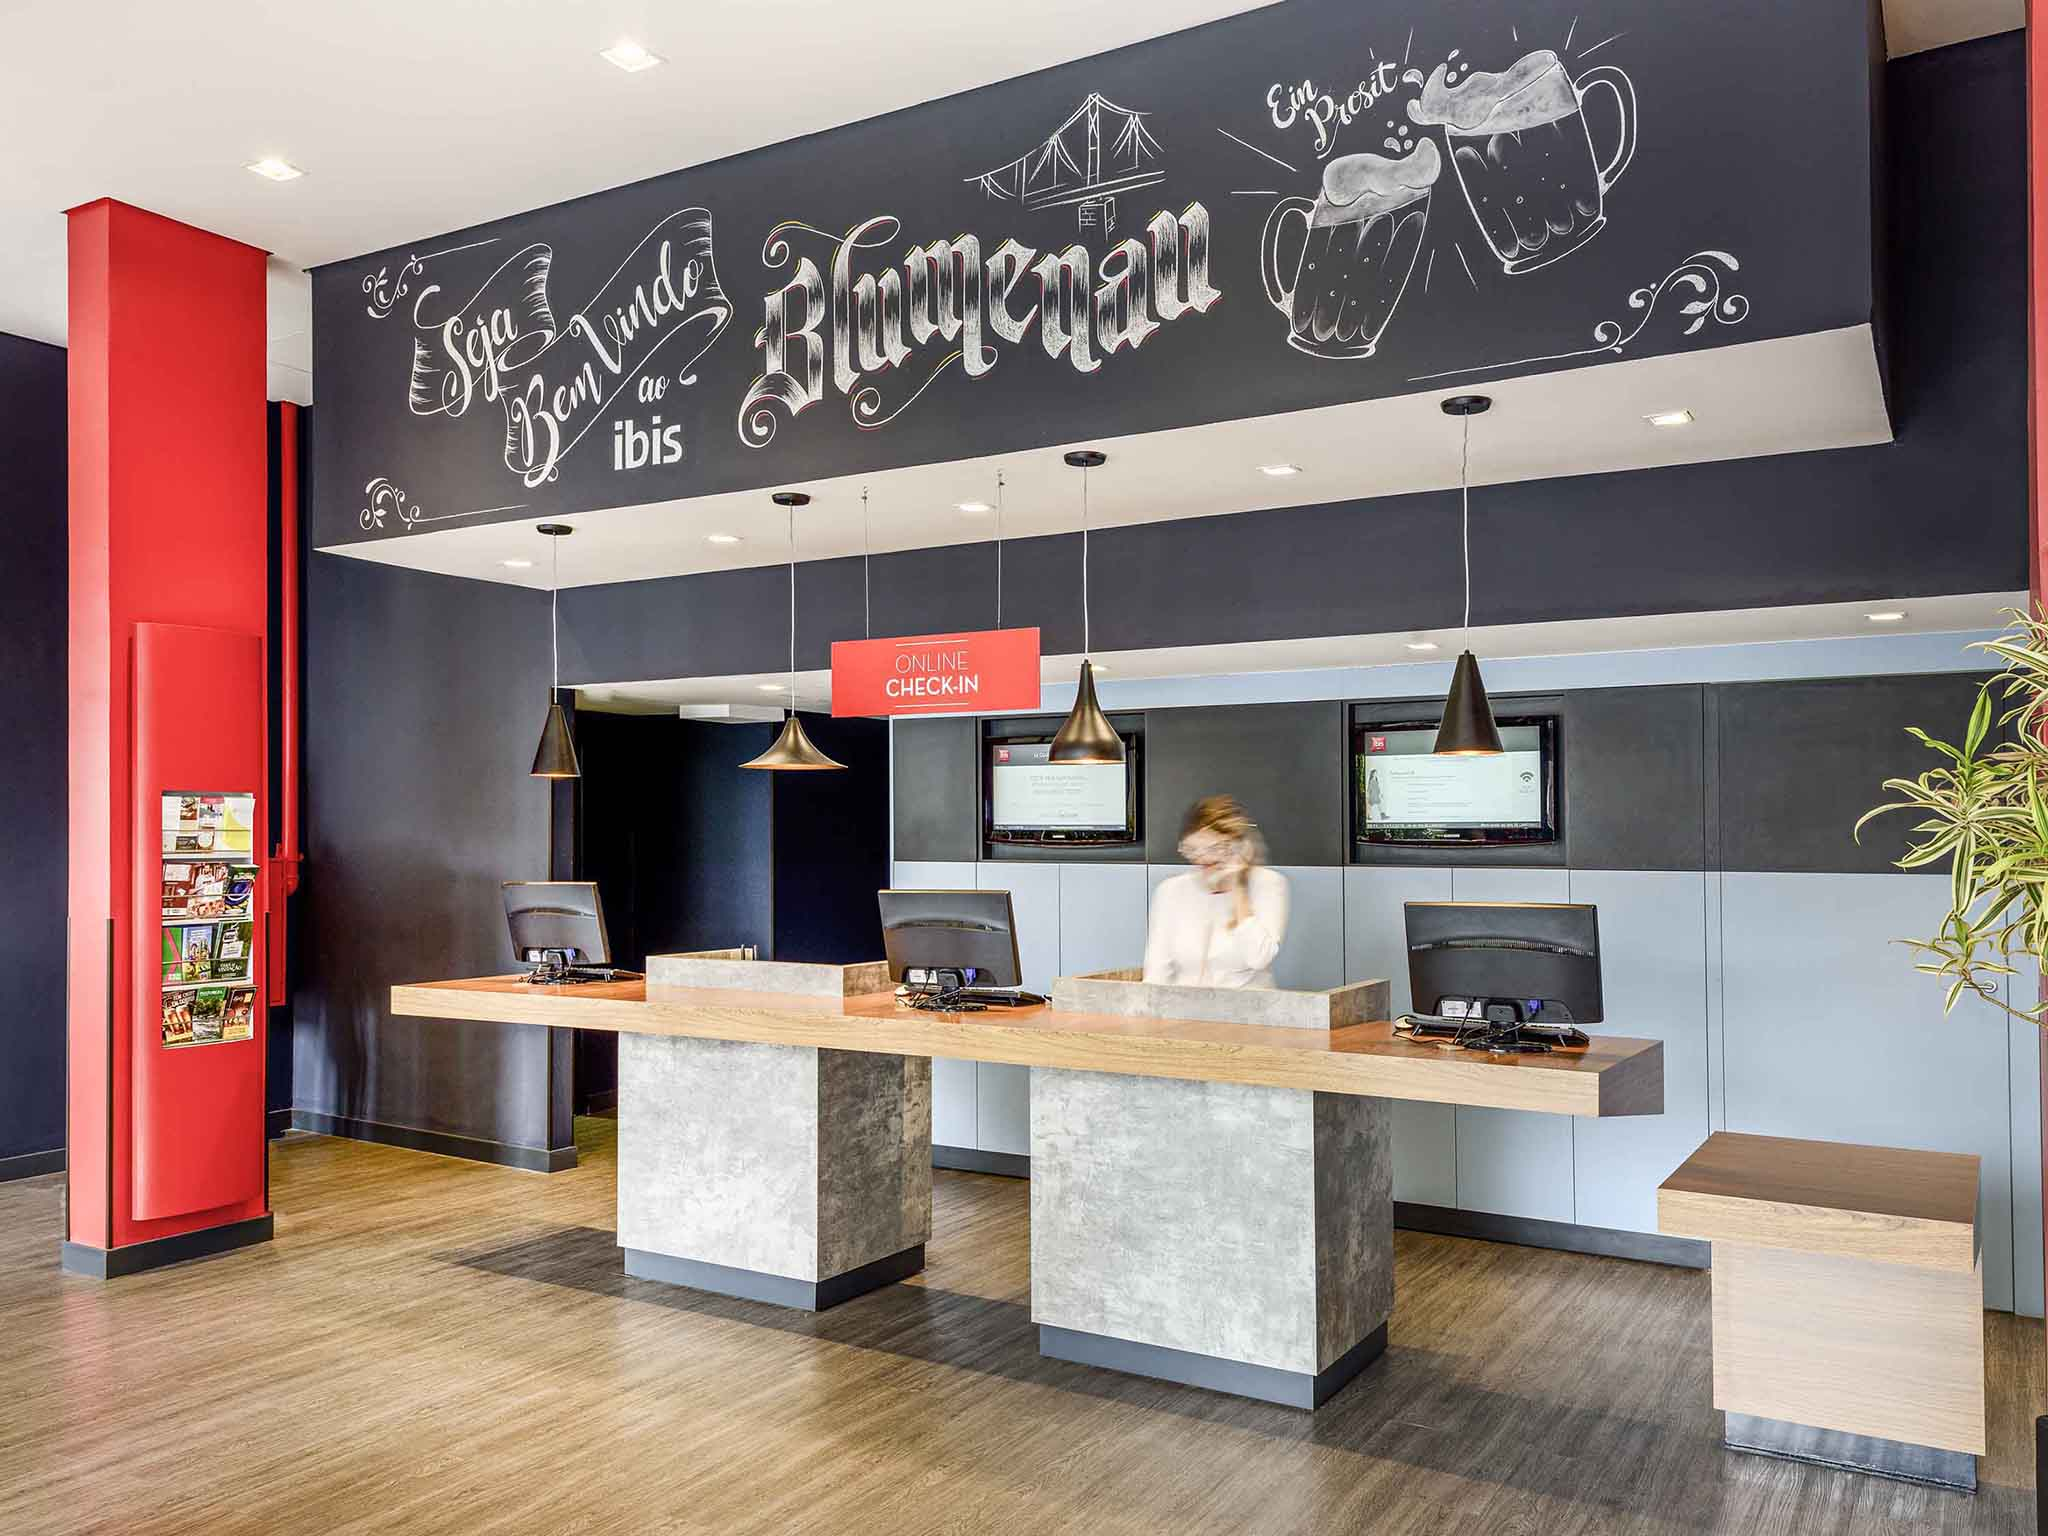 ibis Blumenalbook your budget hotel on the official web site